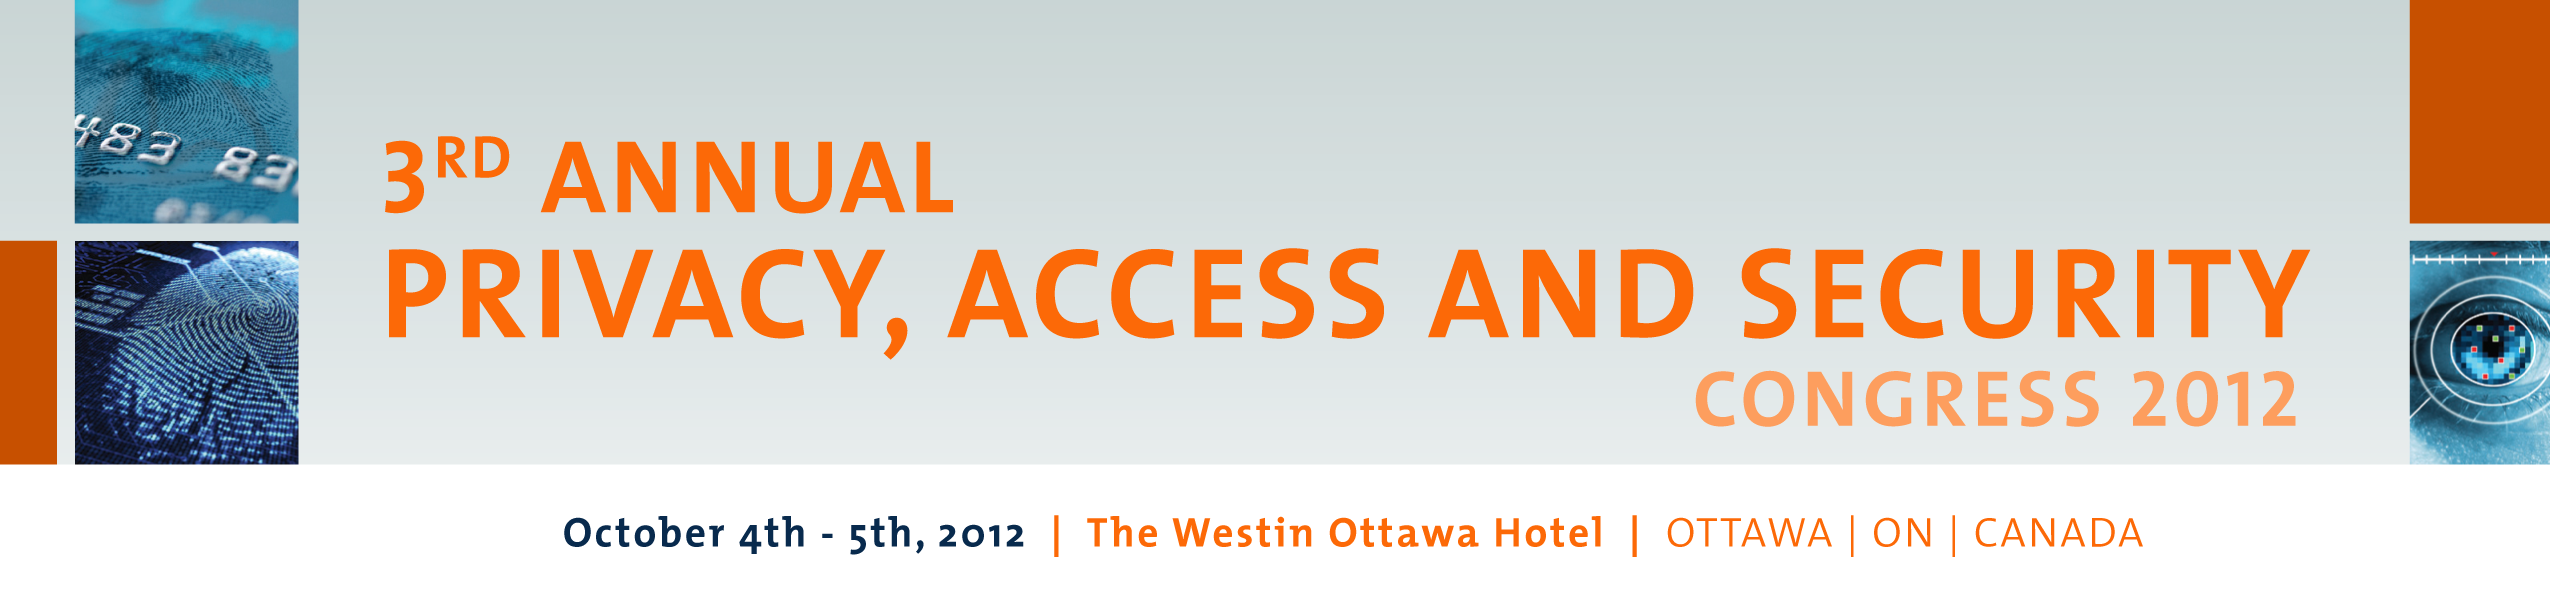 Privacy & Information Security Congress 2012 - The Westin Ottawa Hotel, October 4th-5th, 2012 - Ottawa, ON, Canada